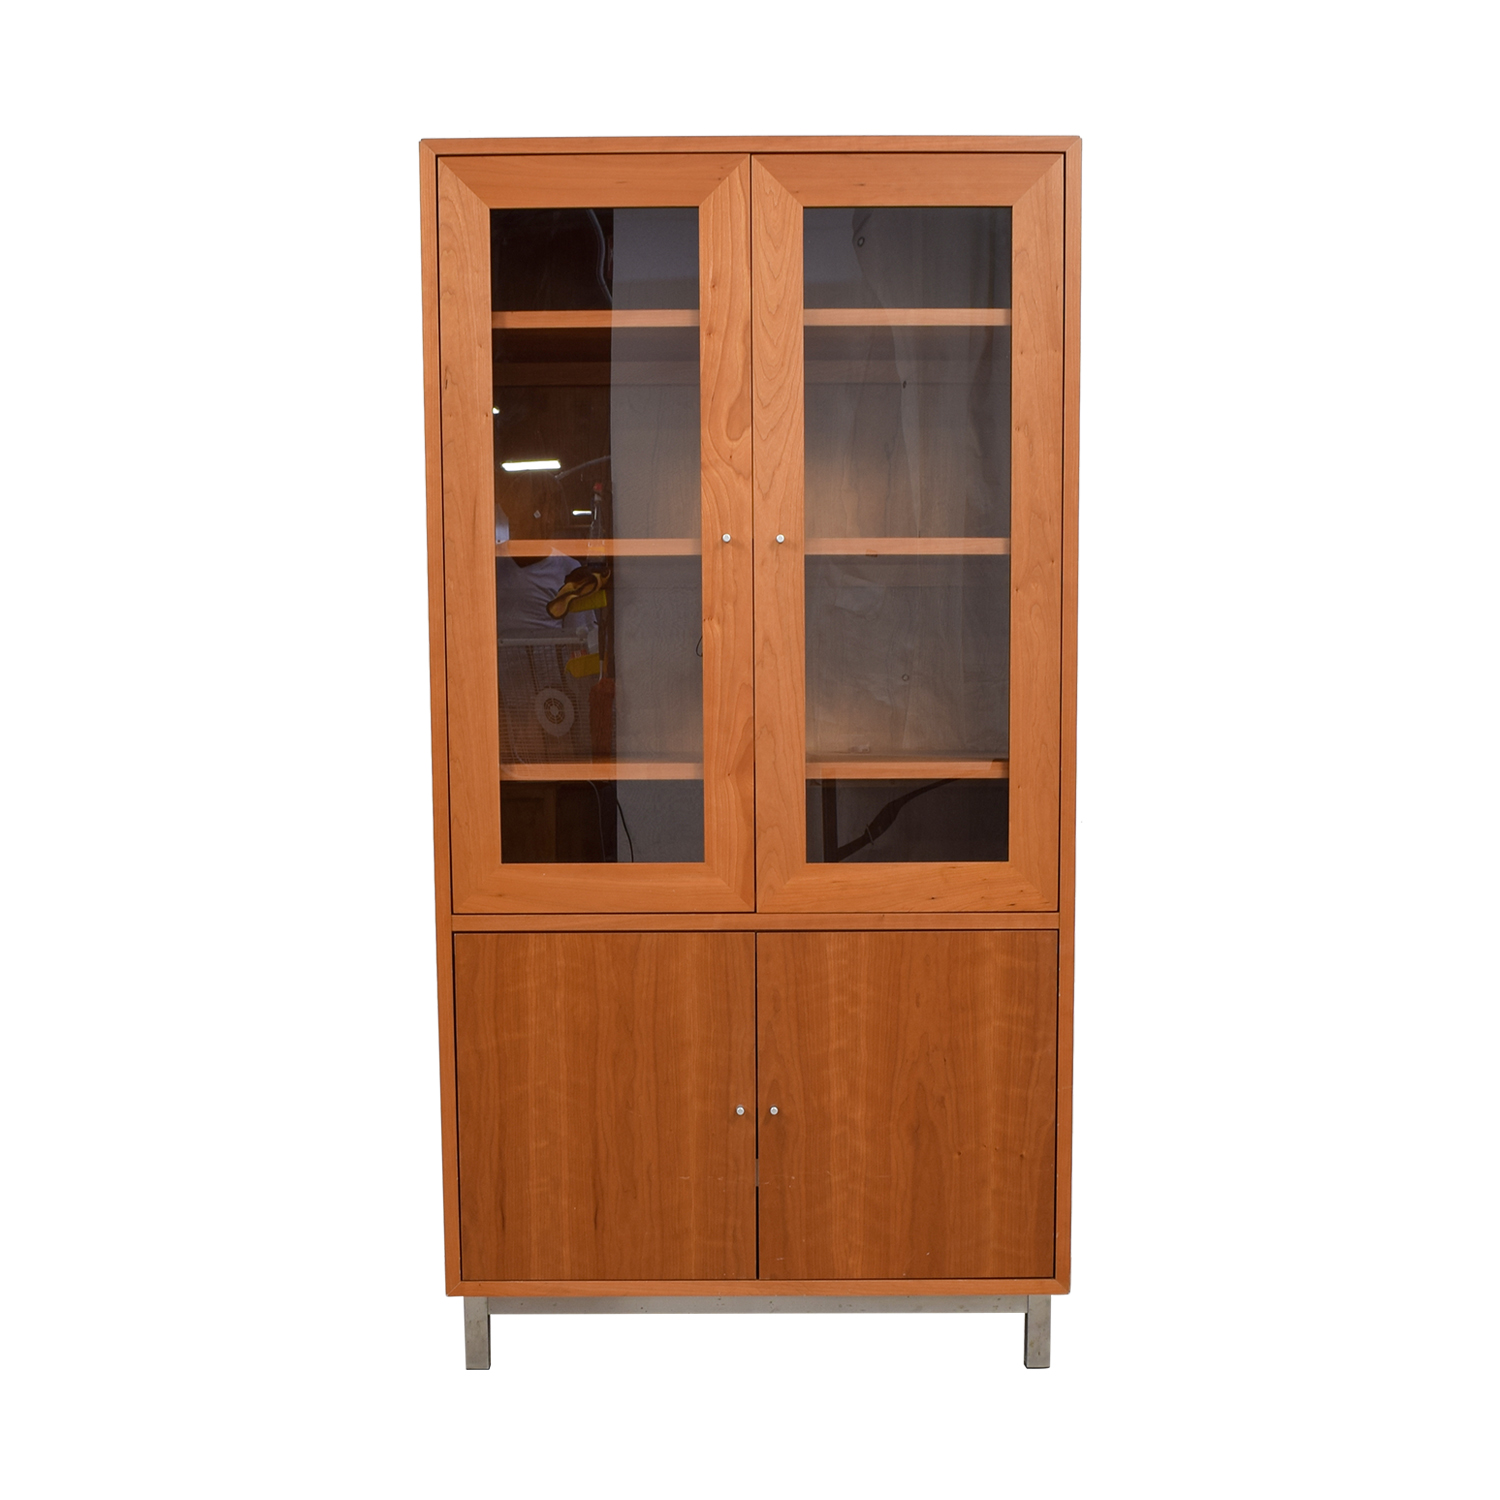 Room & Board Room & Board Wood and Glass Storage Armoire price